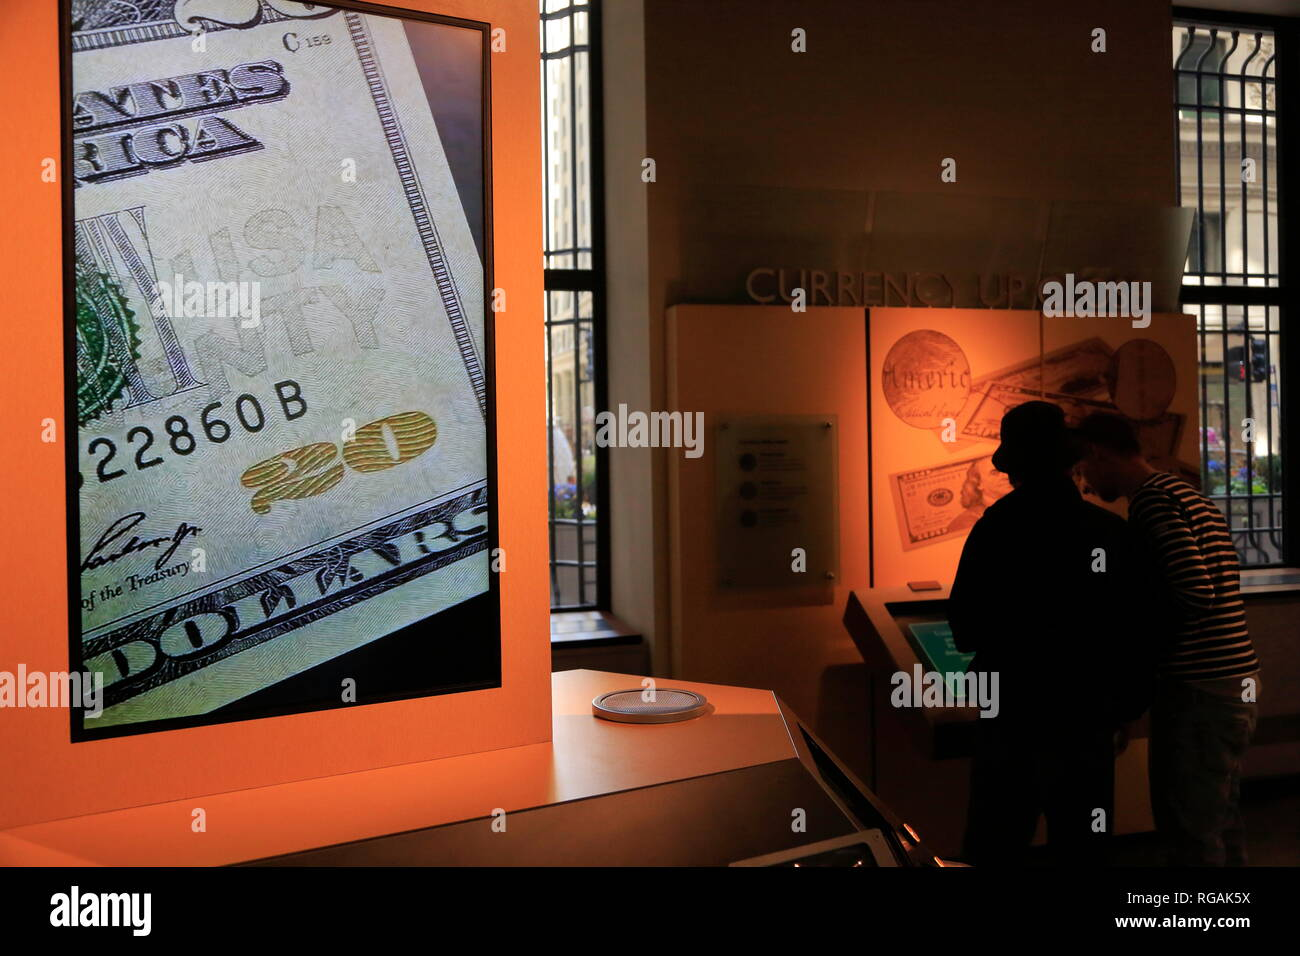 A screen showing detailed security features in US dollar